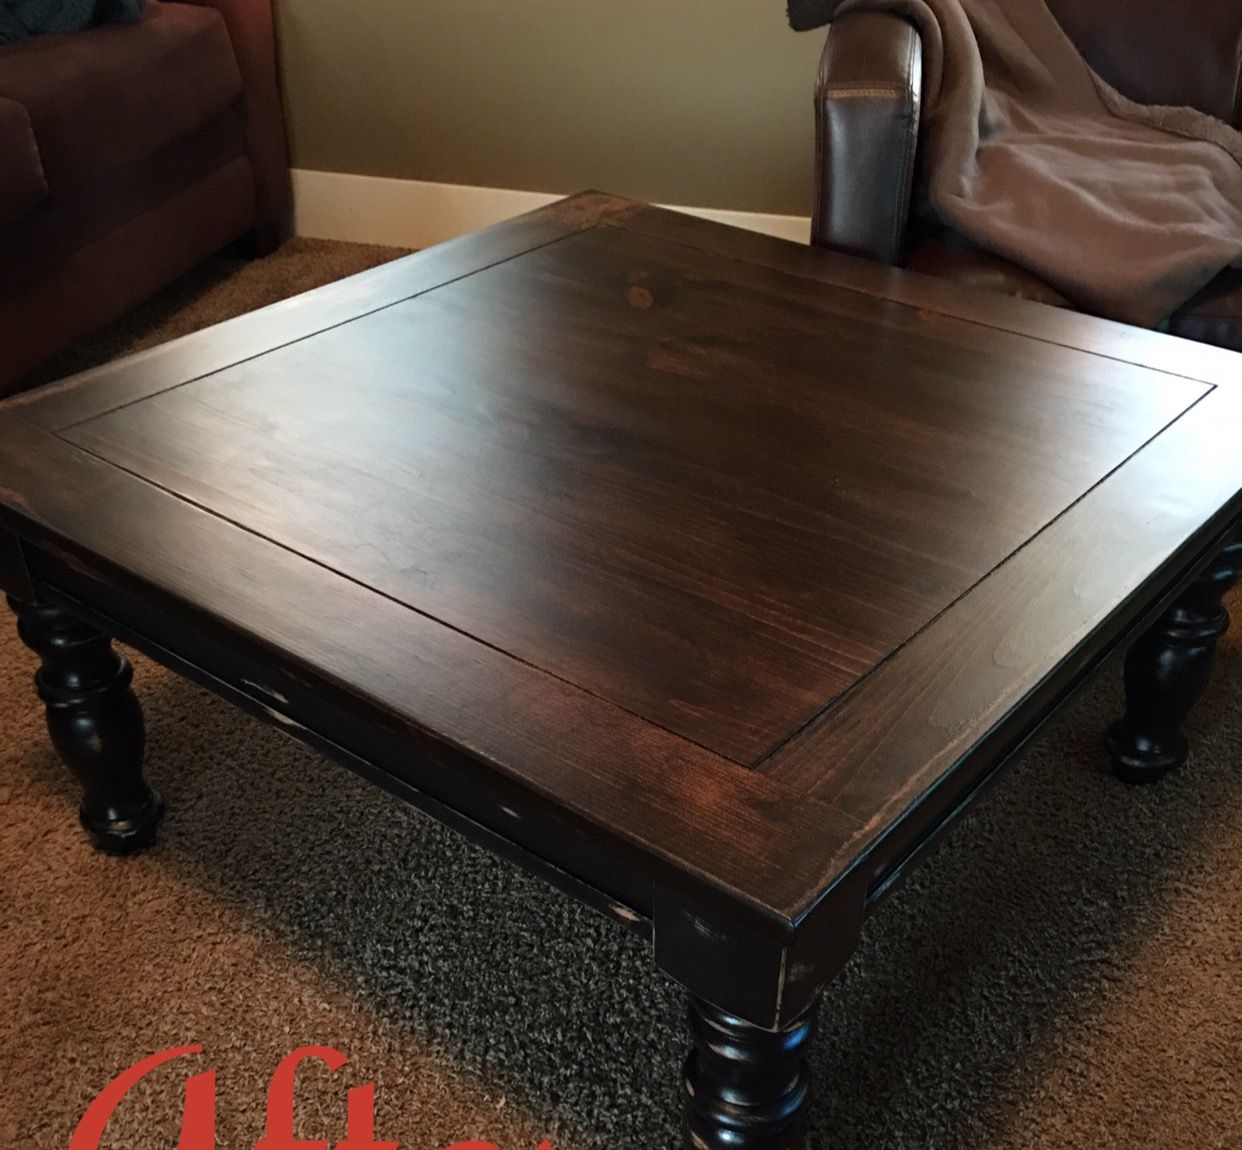 Solid Square Coffee Table Refinished In Expresso Stain And Black